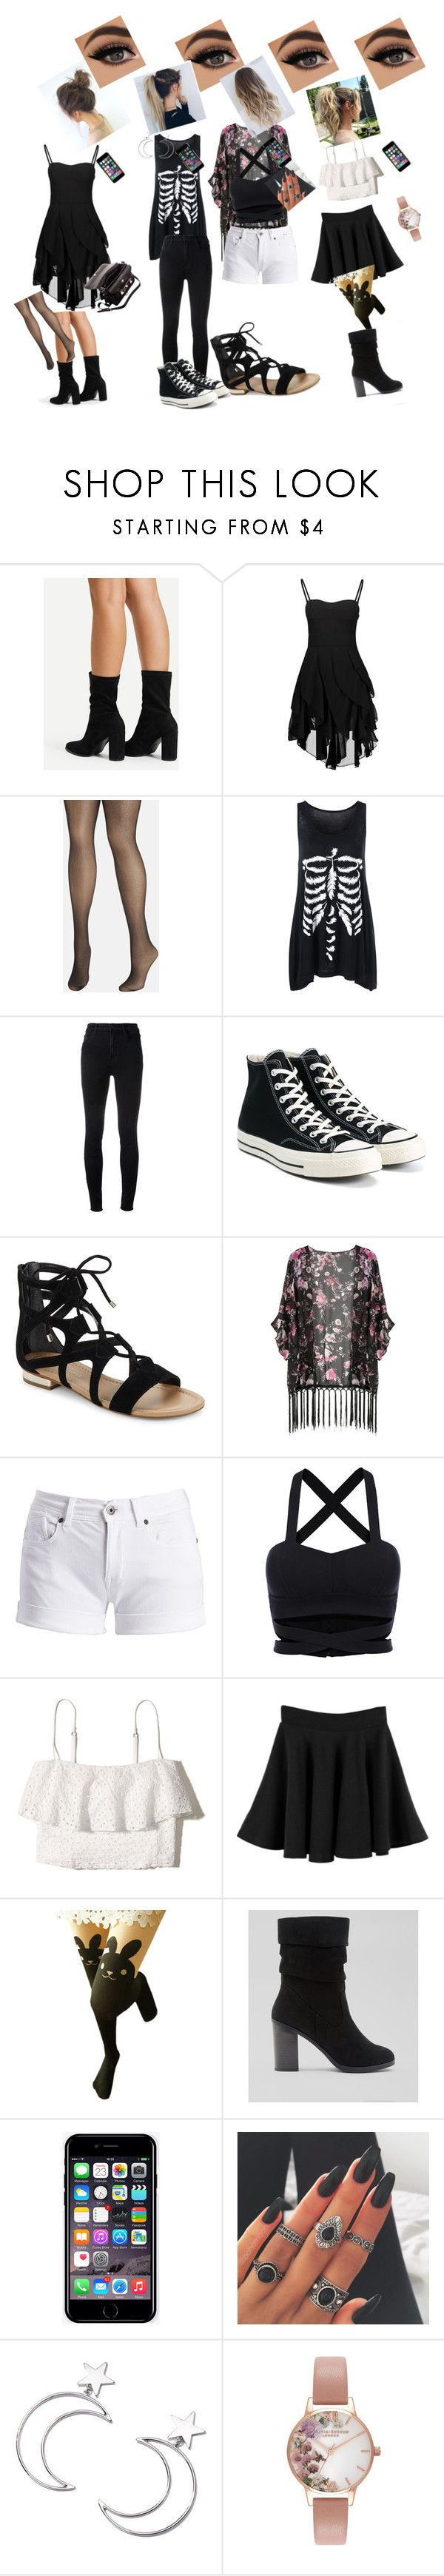 """outfits id love"" by samrichards-i ❤ liked on Polyvore featuring Proenza Schouler, Avenue, J Brand, Converse, Capelli New York, Saks Fifth Avenue, Barbour International, Hollister Co., New Look and Off-White"